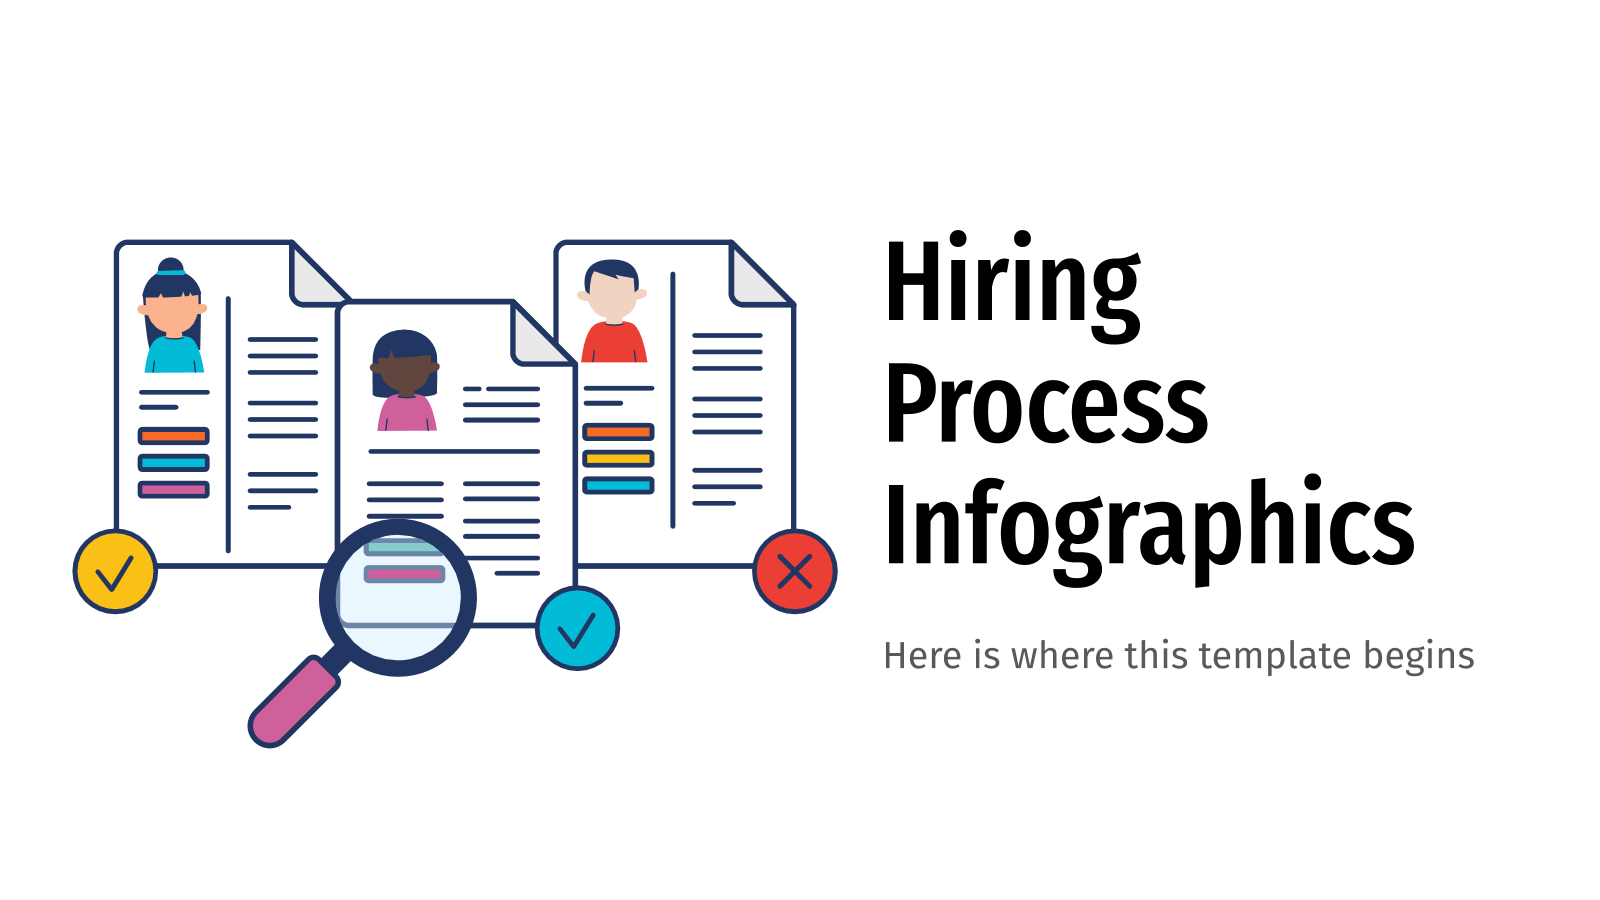 Hiring Process Infographics presentation template